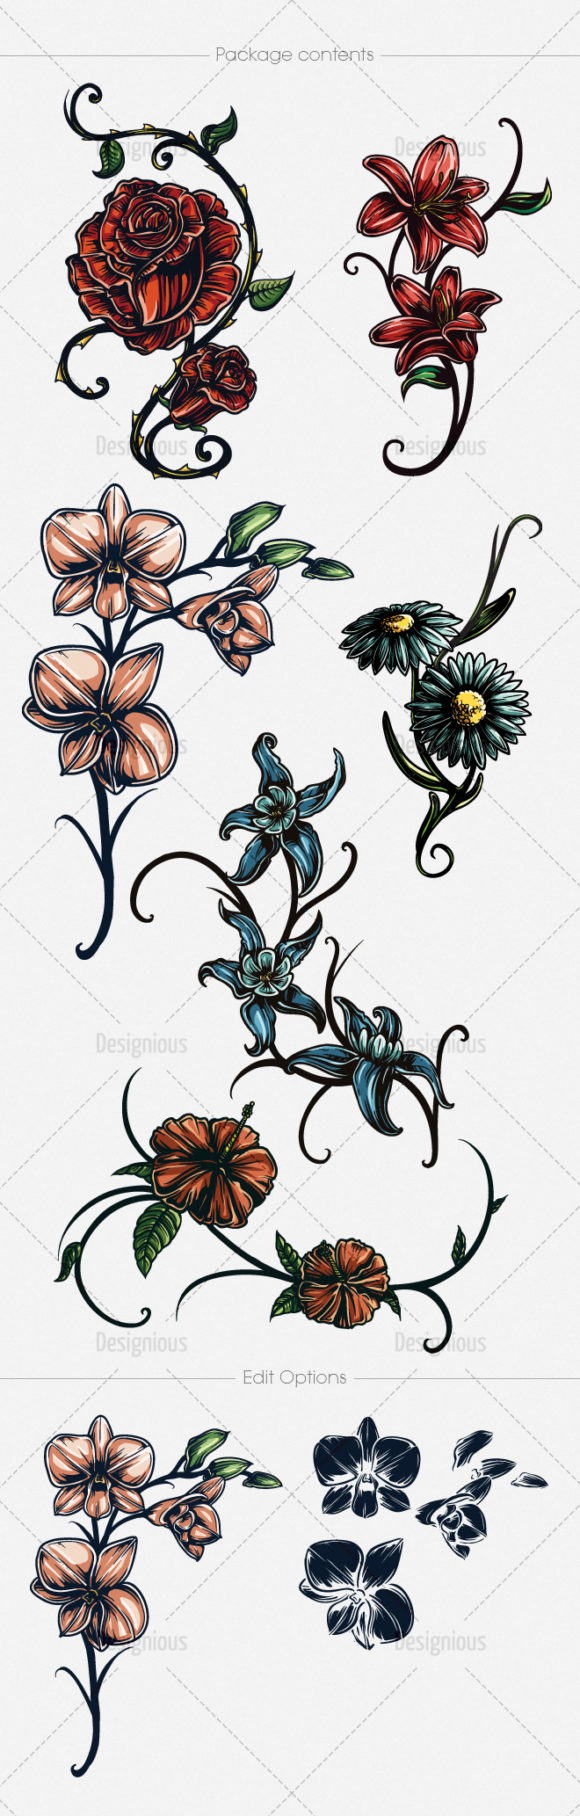 Floral Vector Pack 136 products designious vector floral 136 large